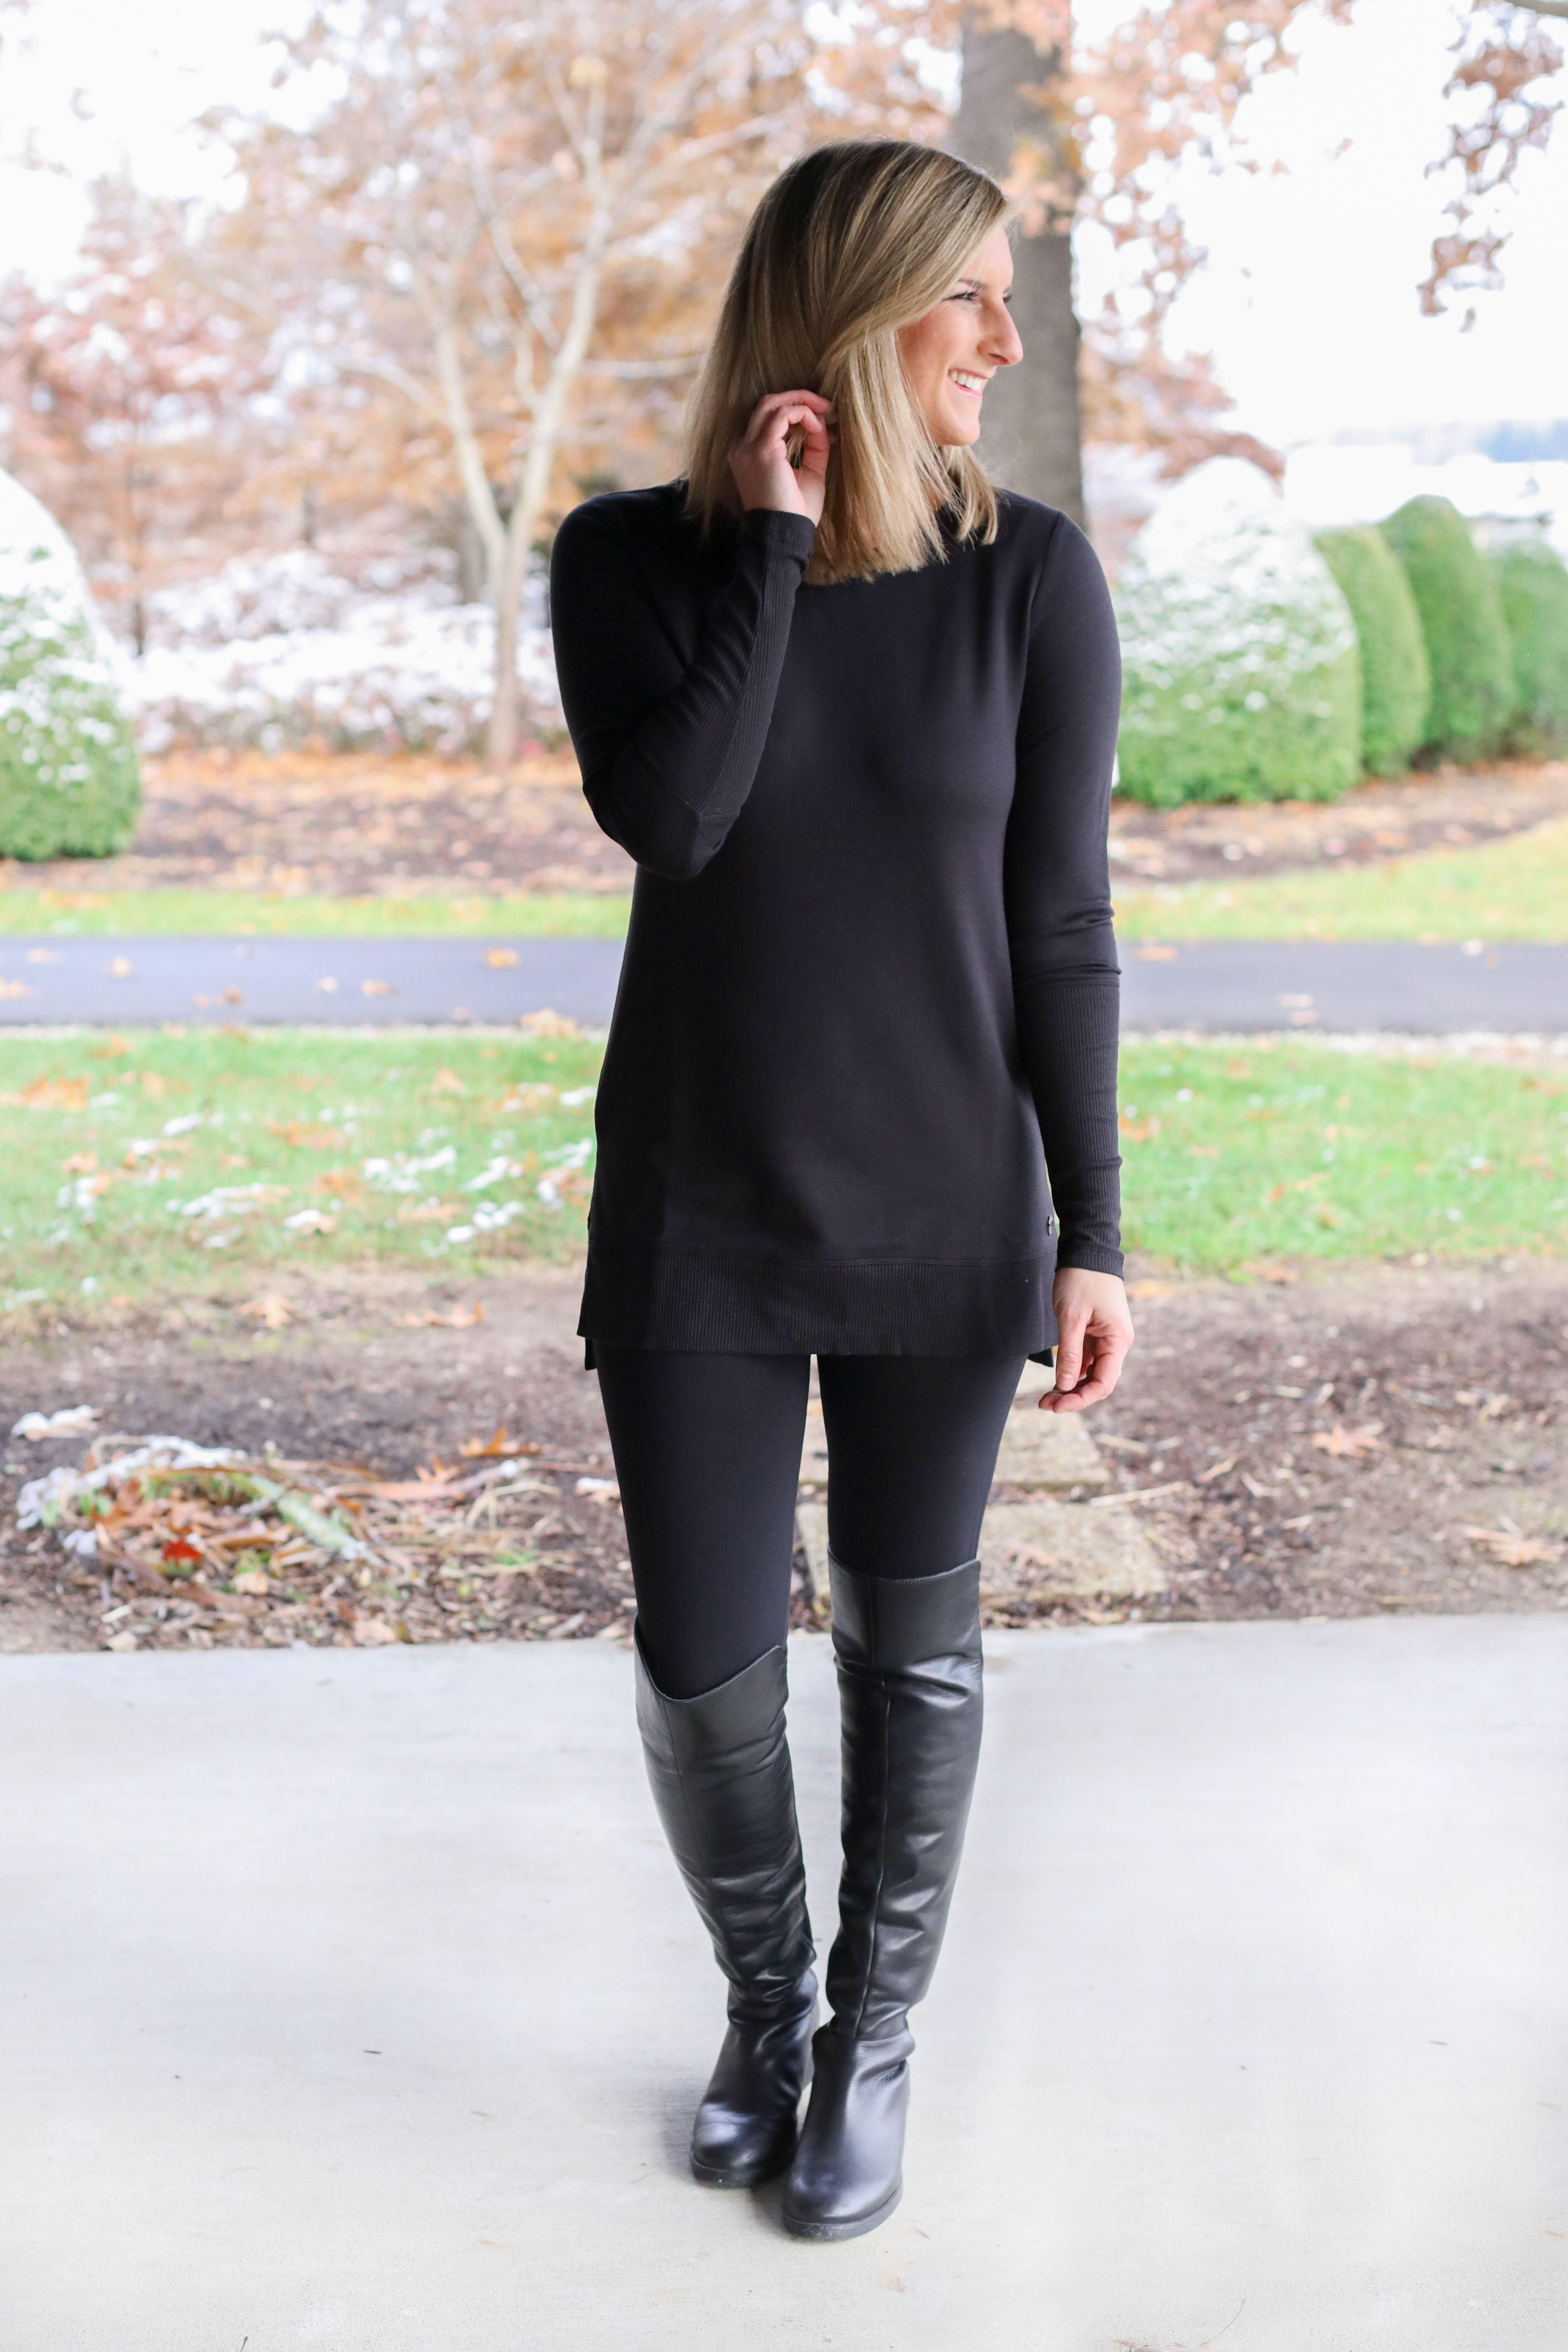 Black Combination Outfits With Leggings Black Tunic Outfit Black Leggings Outfit [ 5720 x 3813 Pixel ]